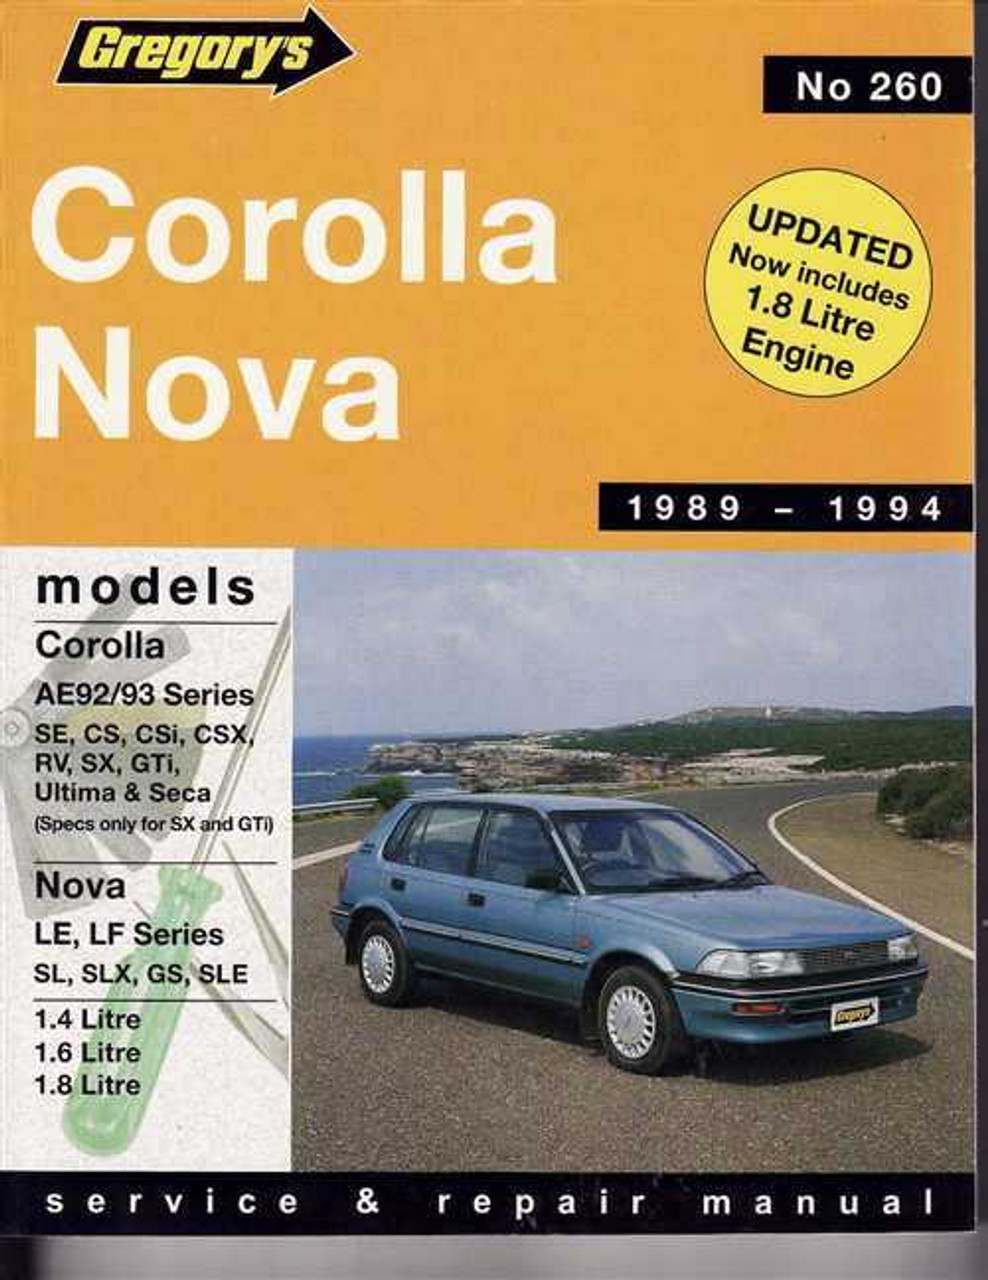 toyota corolla amp holden nova 1989 1994 workshop manual rh automotobookshop com au ae92 corolla workshop manual pdf toyota corolla ae92 repair manual pdf